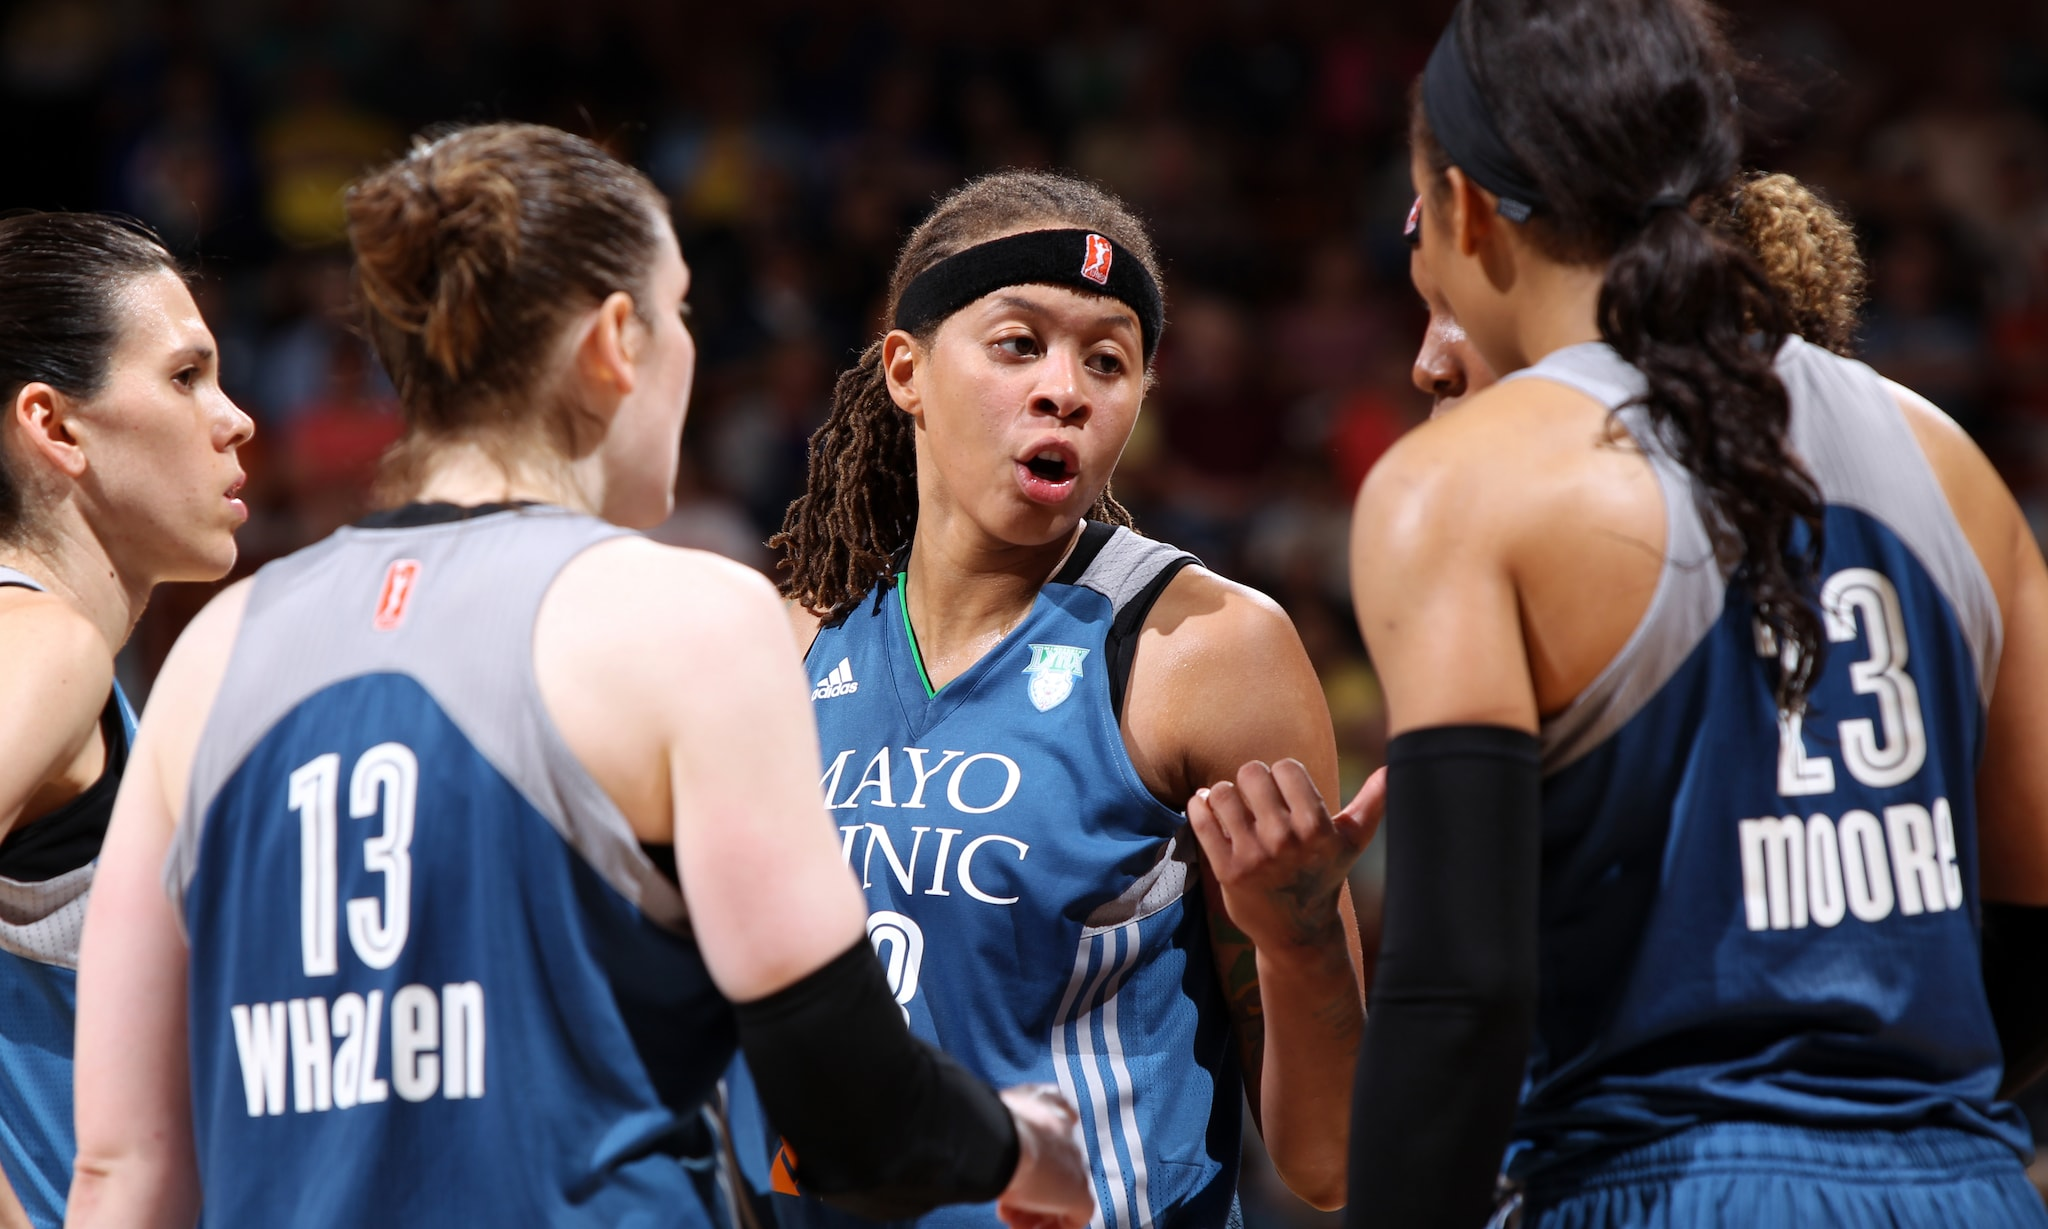 Despite some early struggles, the Lynx came out scoring in the second-half, outscoring the Sun 20-14 in the third quarter and 43-39 in the second half.